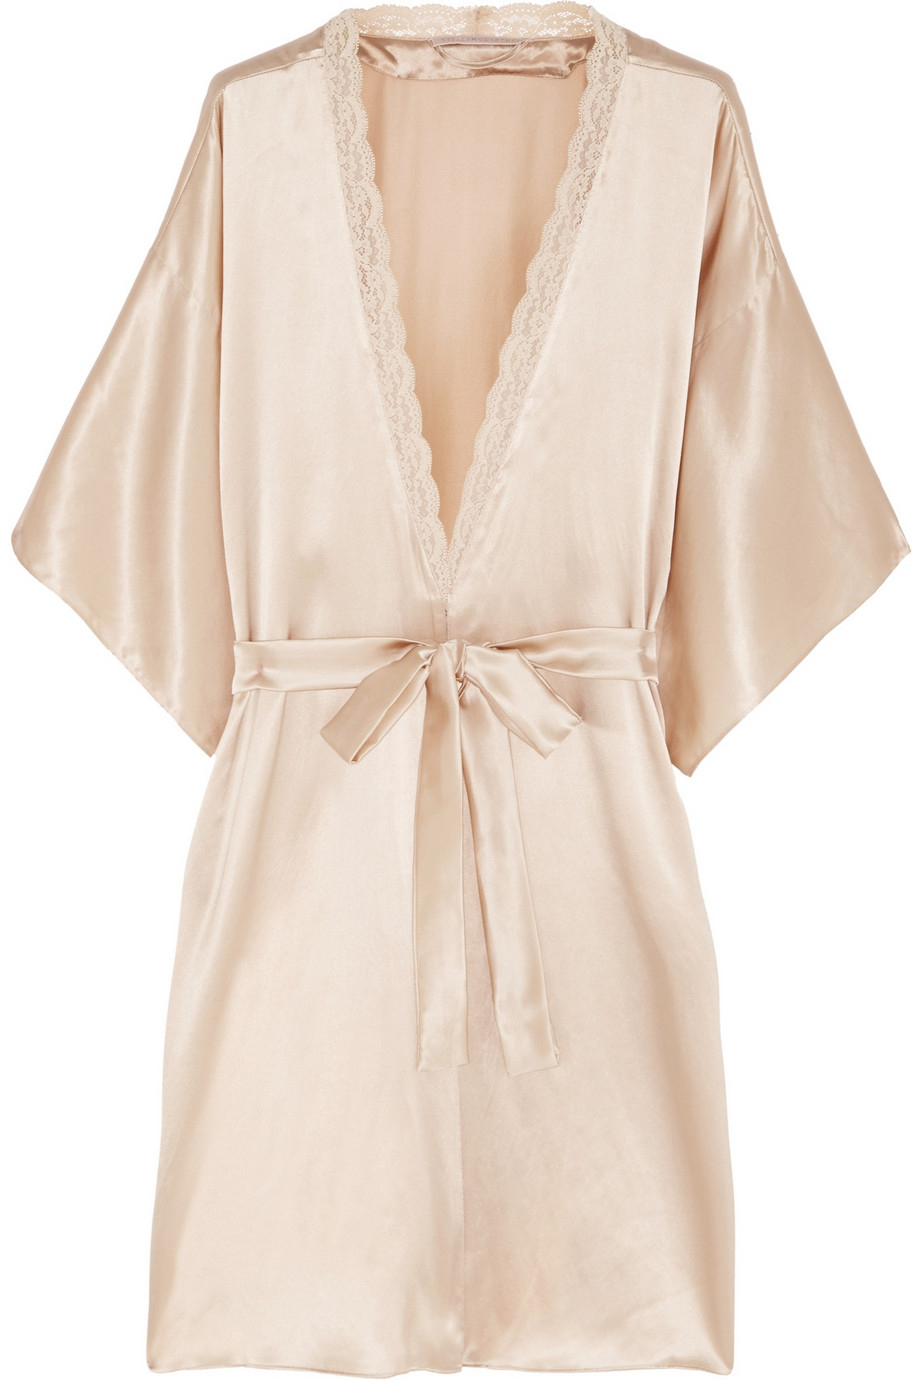 stella mccartney clara whispering lace trimmed silk robe in pink lyst. Black Bedroom Furniture Sets. Home Design Ideas